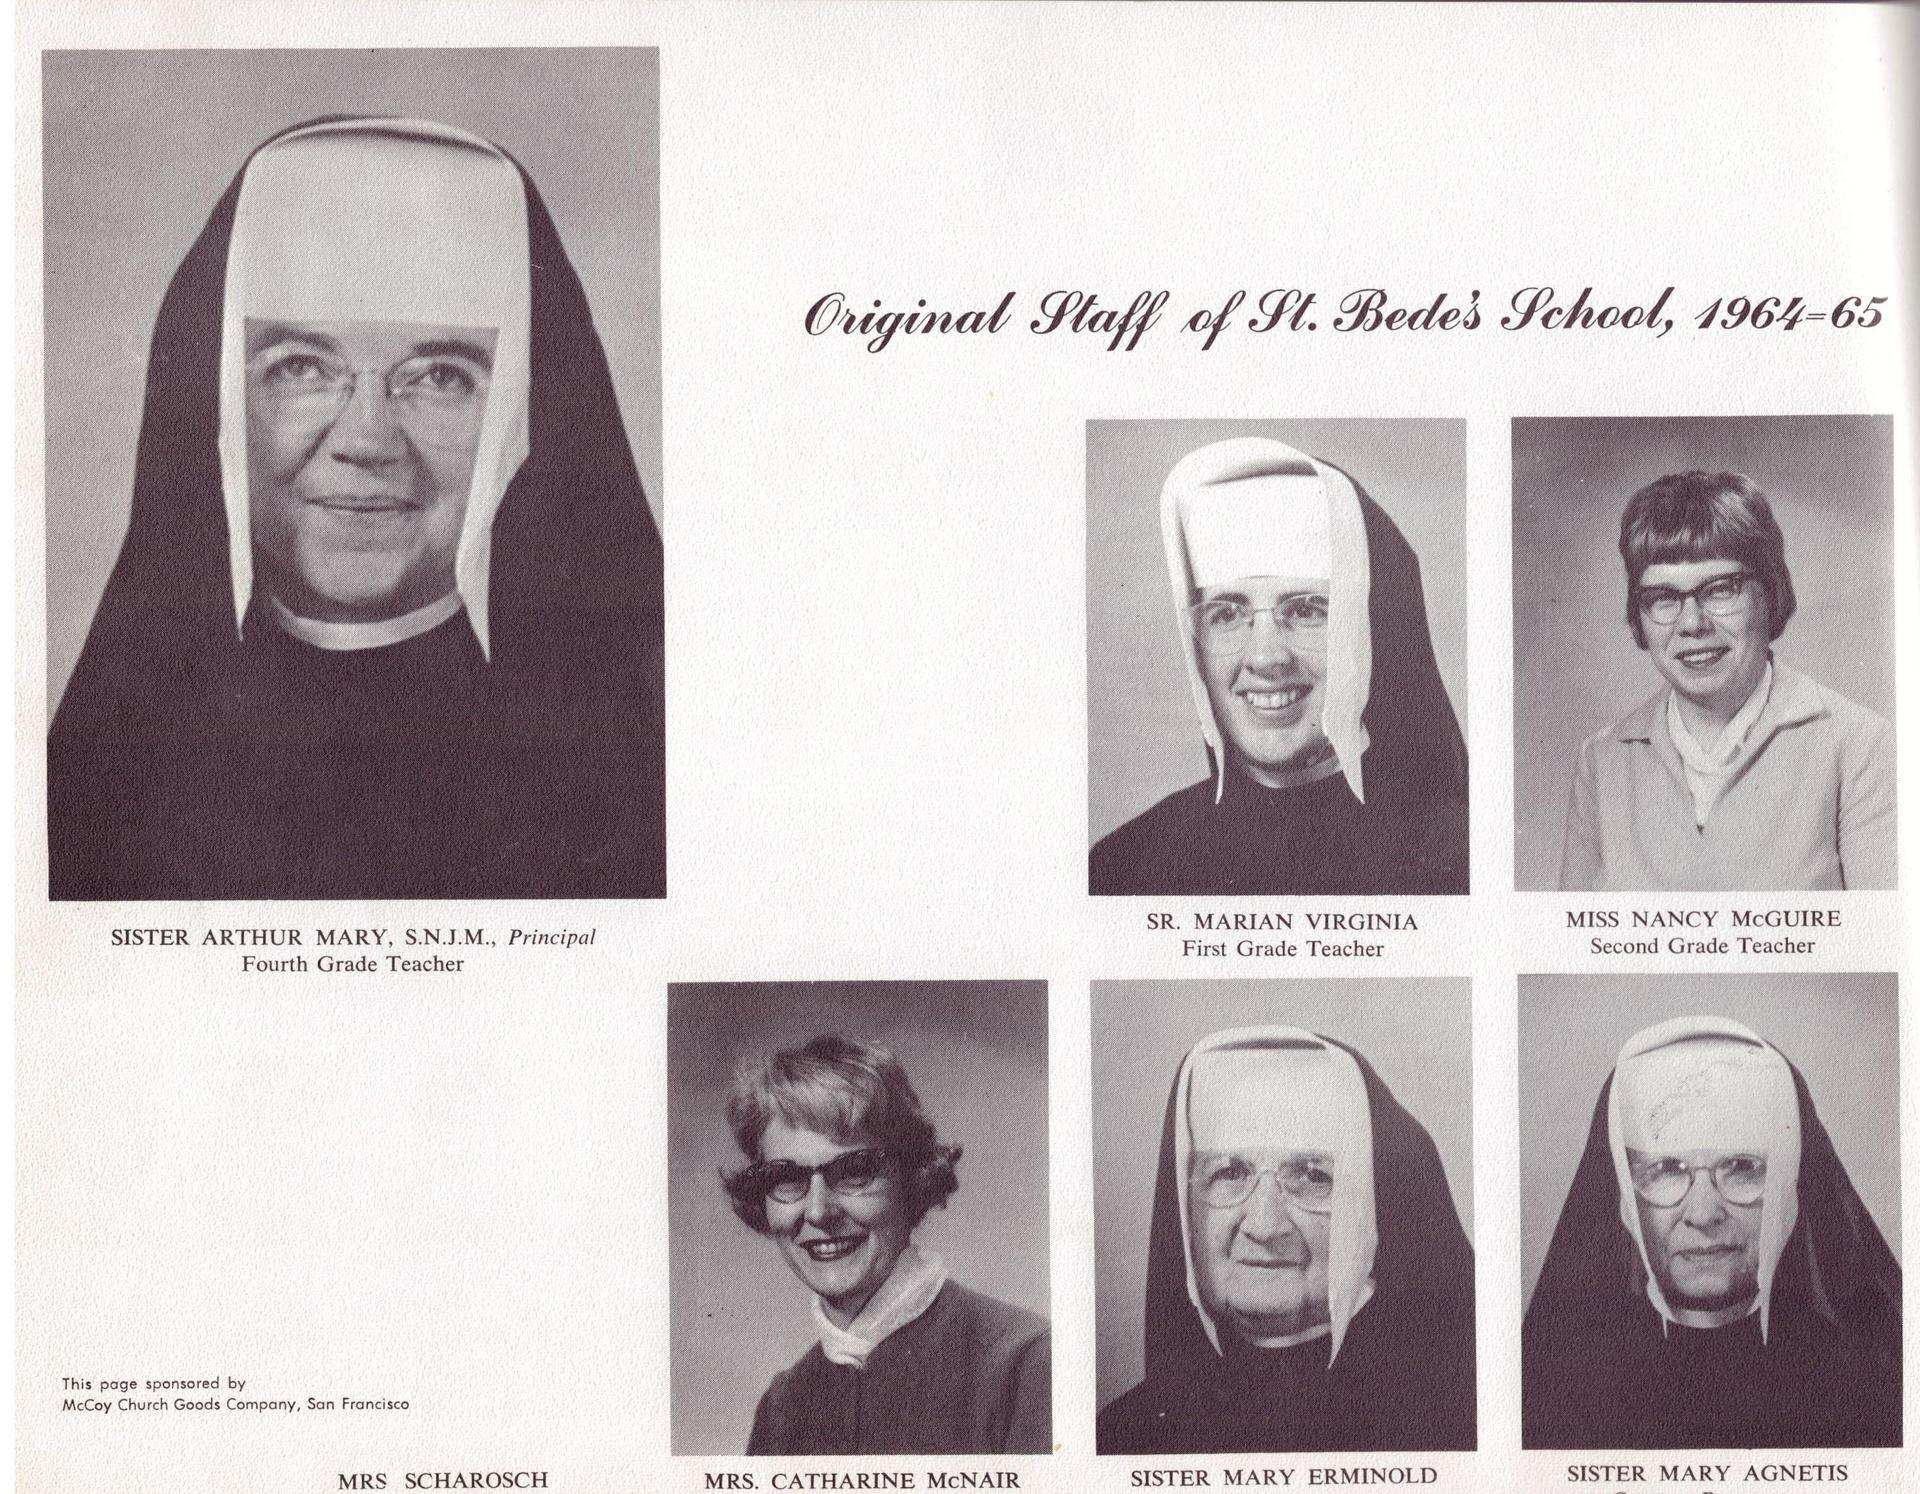 The original staff of St. Bede Catholic School in 1964.